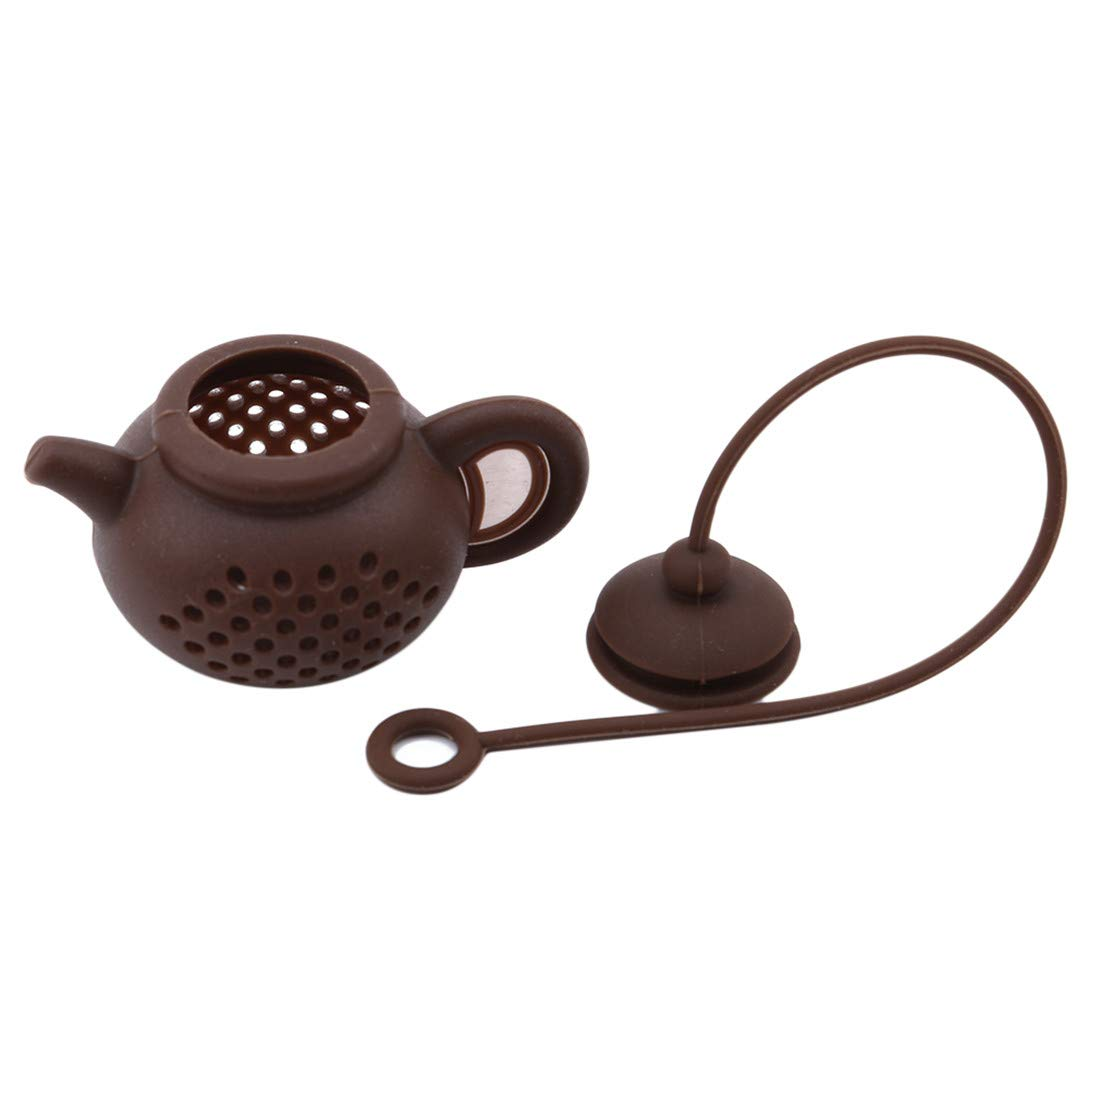 VWH Teapot Shape Tea Infuser $...